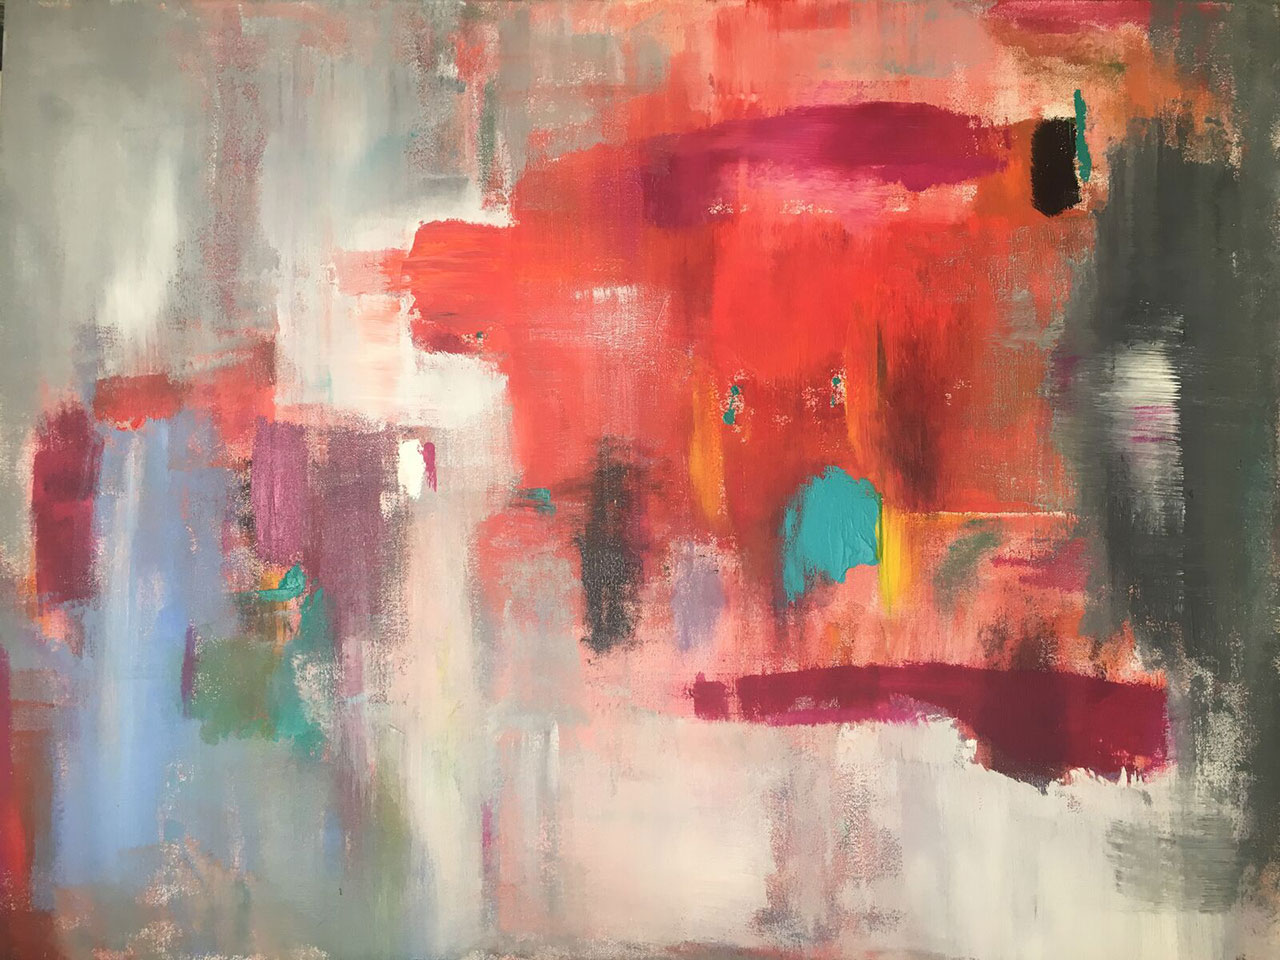 Second Abstraction